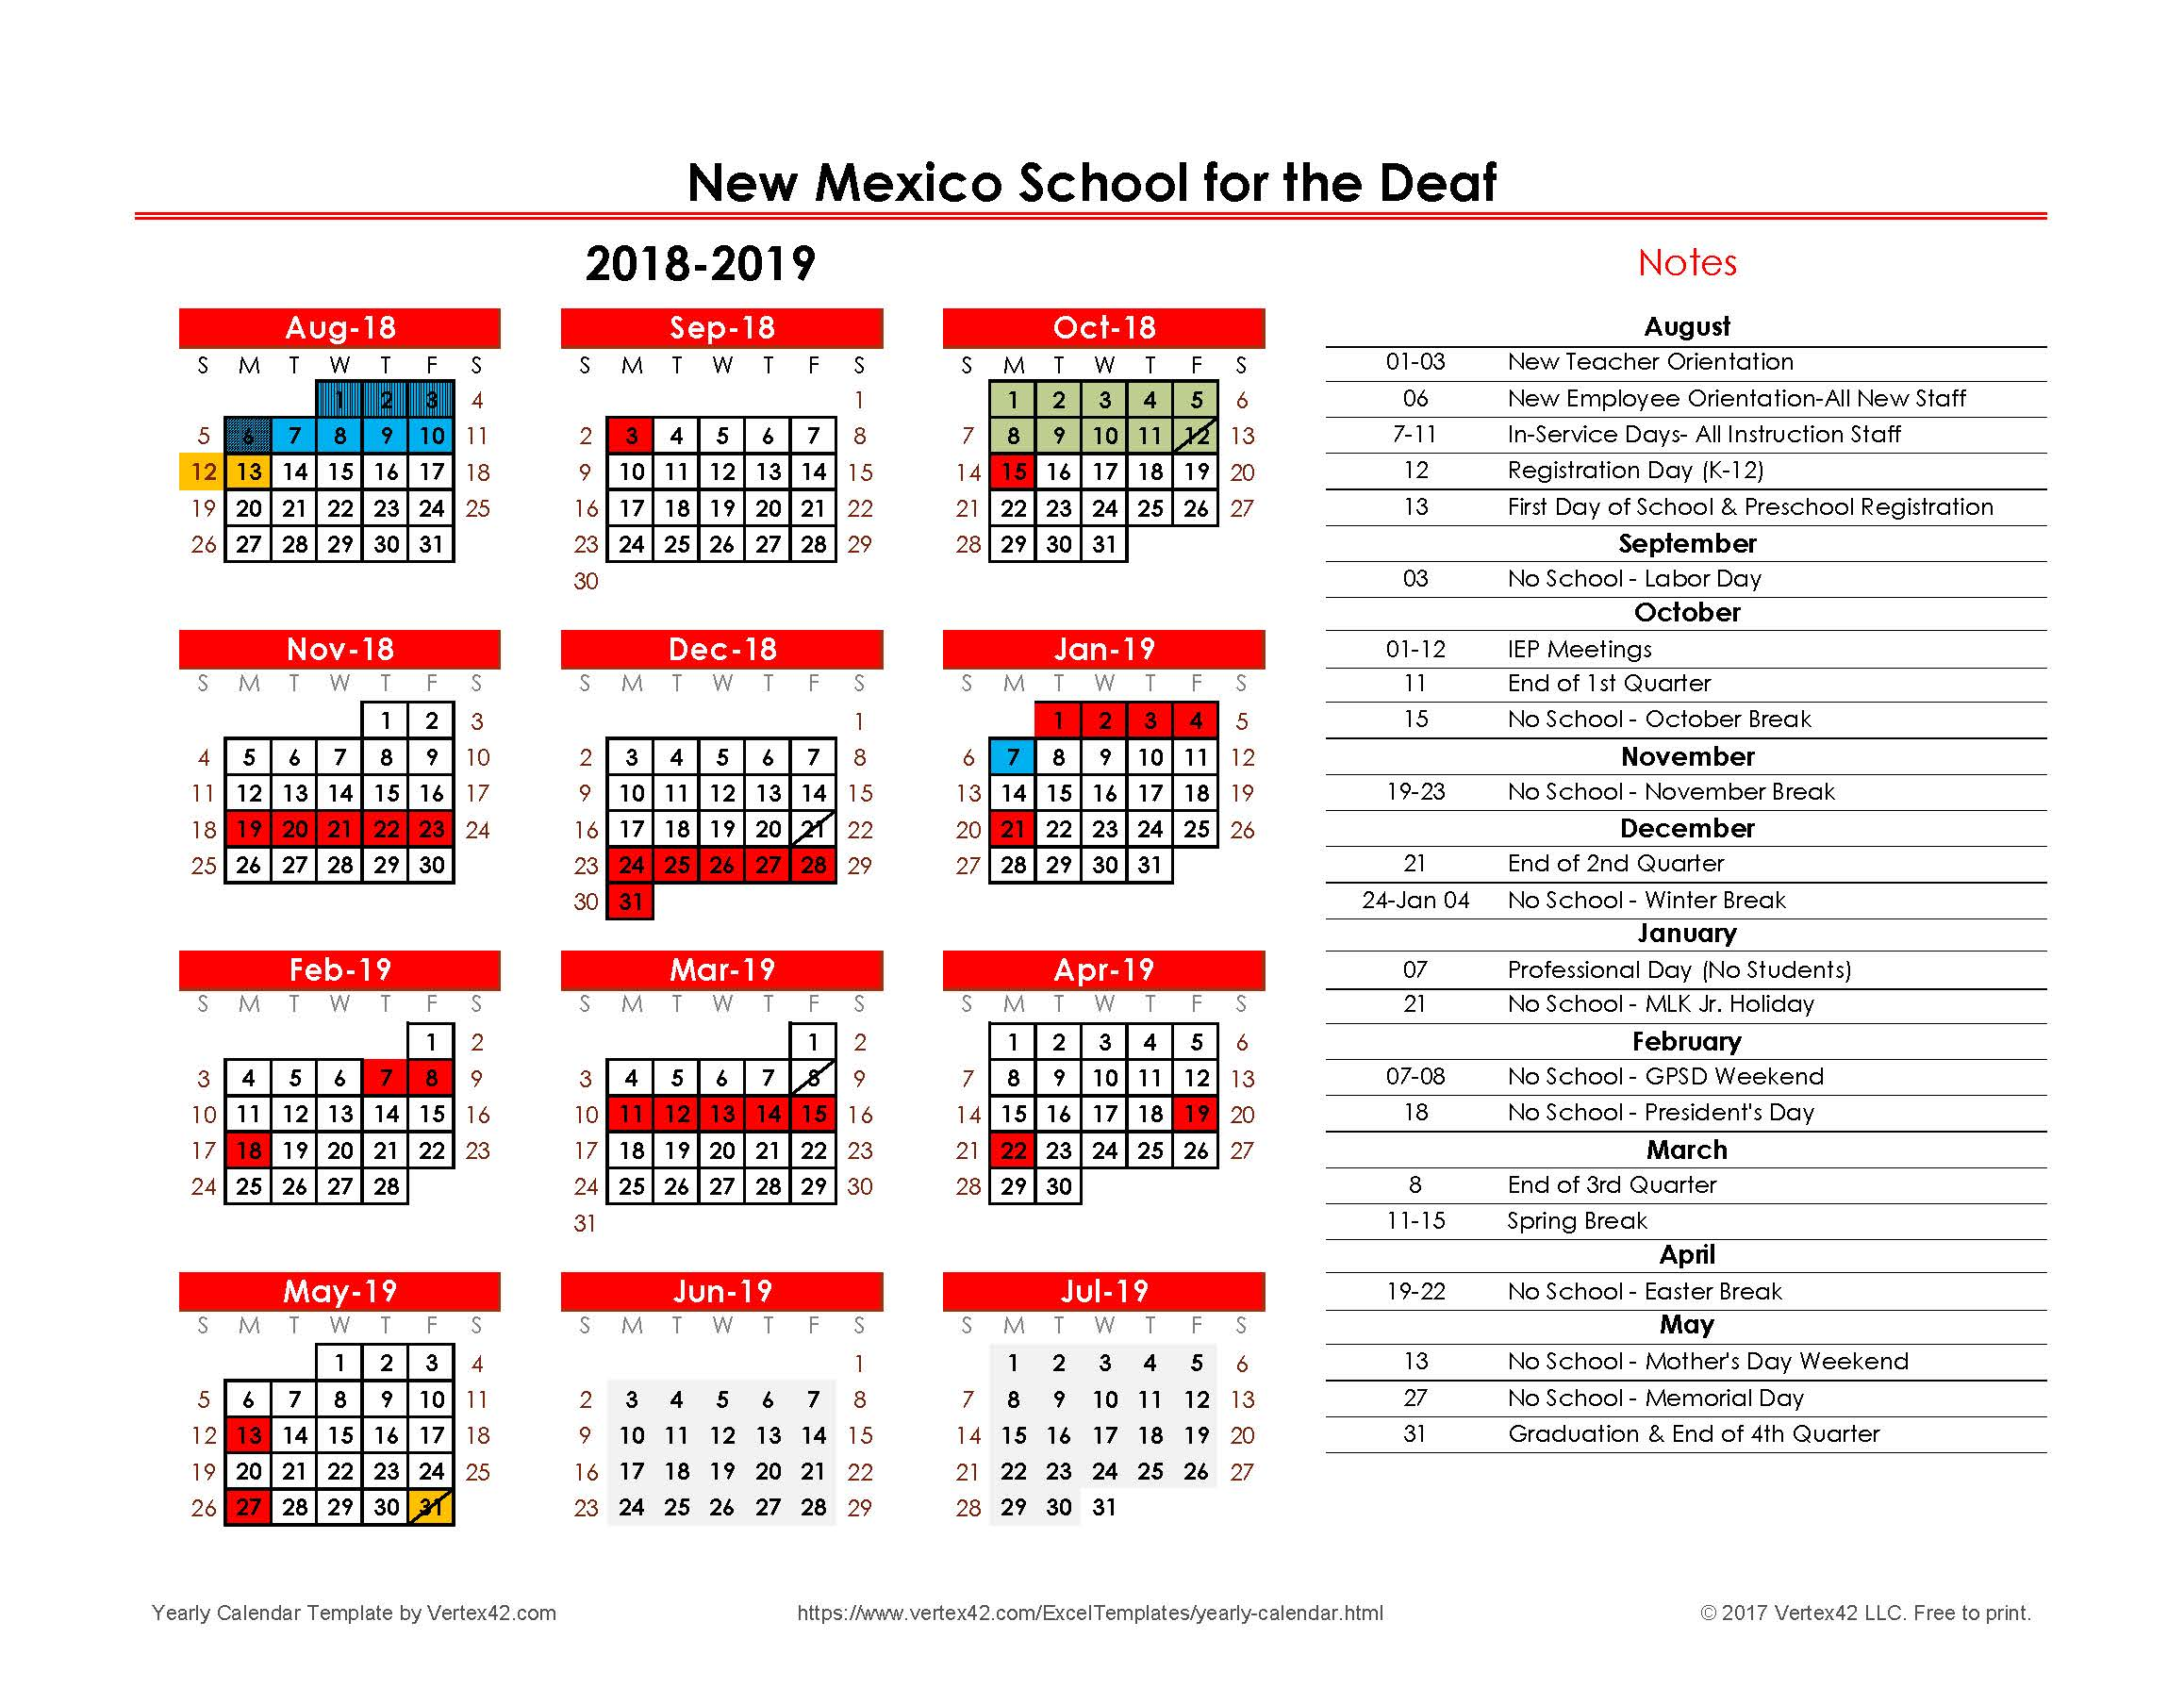 Vietnam School Year Calendar 2019 With Calendars New Mexico For The Deaf